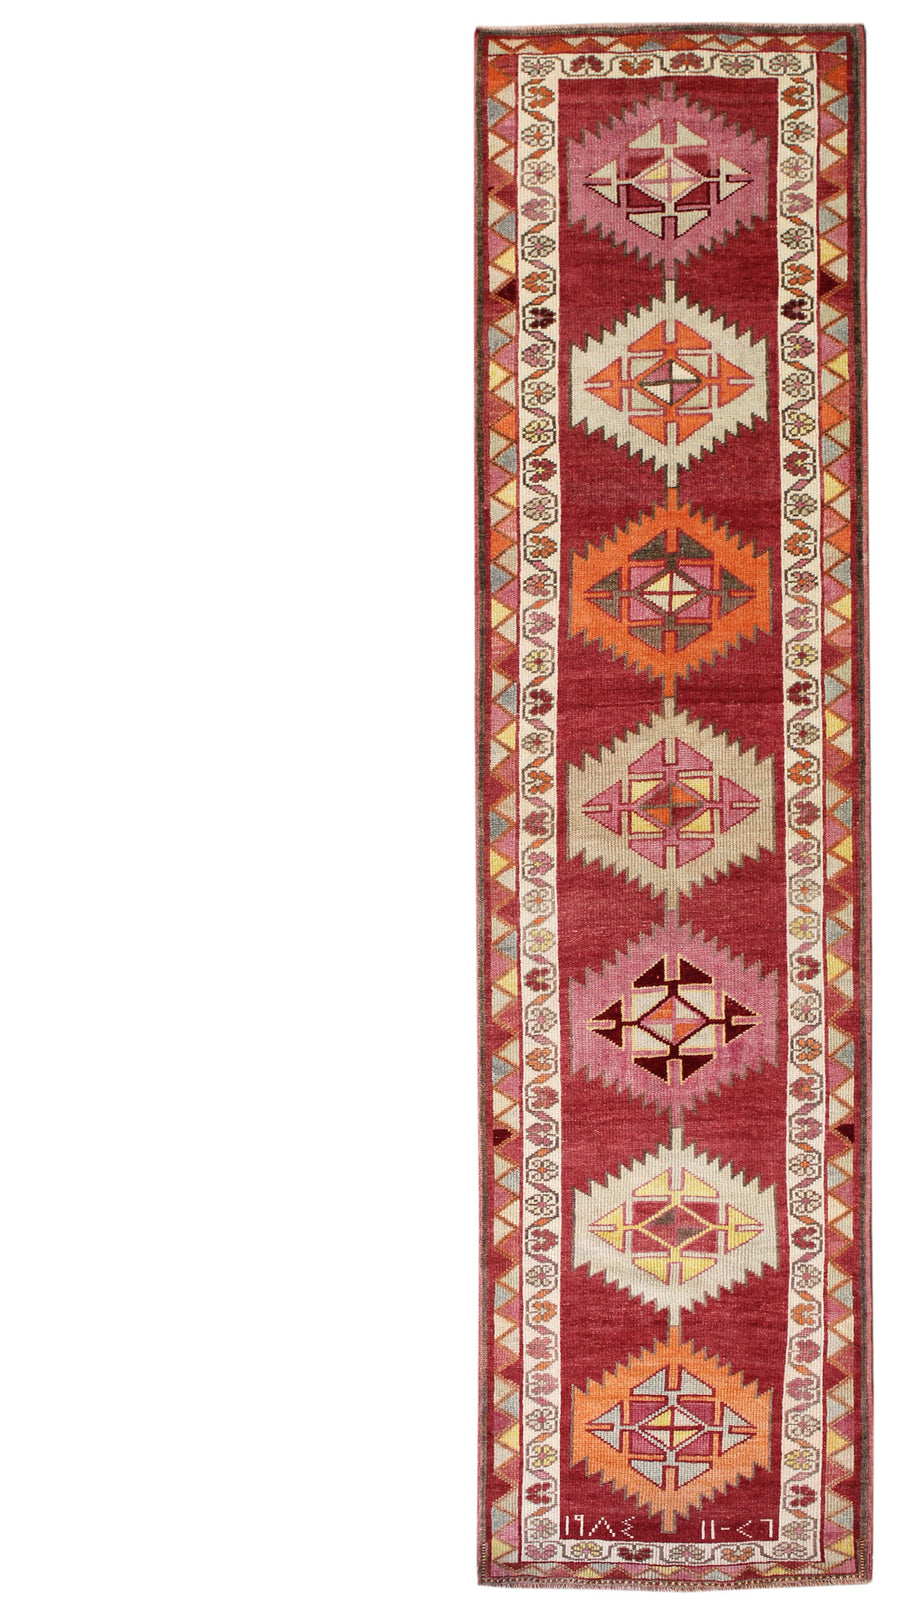 KURDISH HANDKNOTTED RUG, J54111